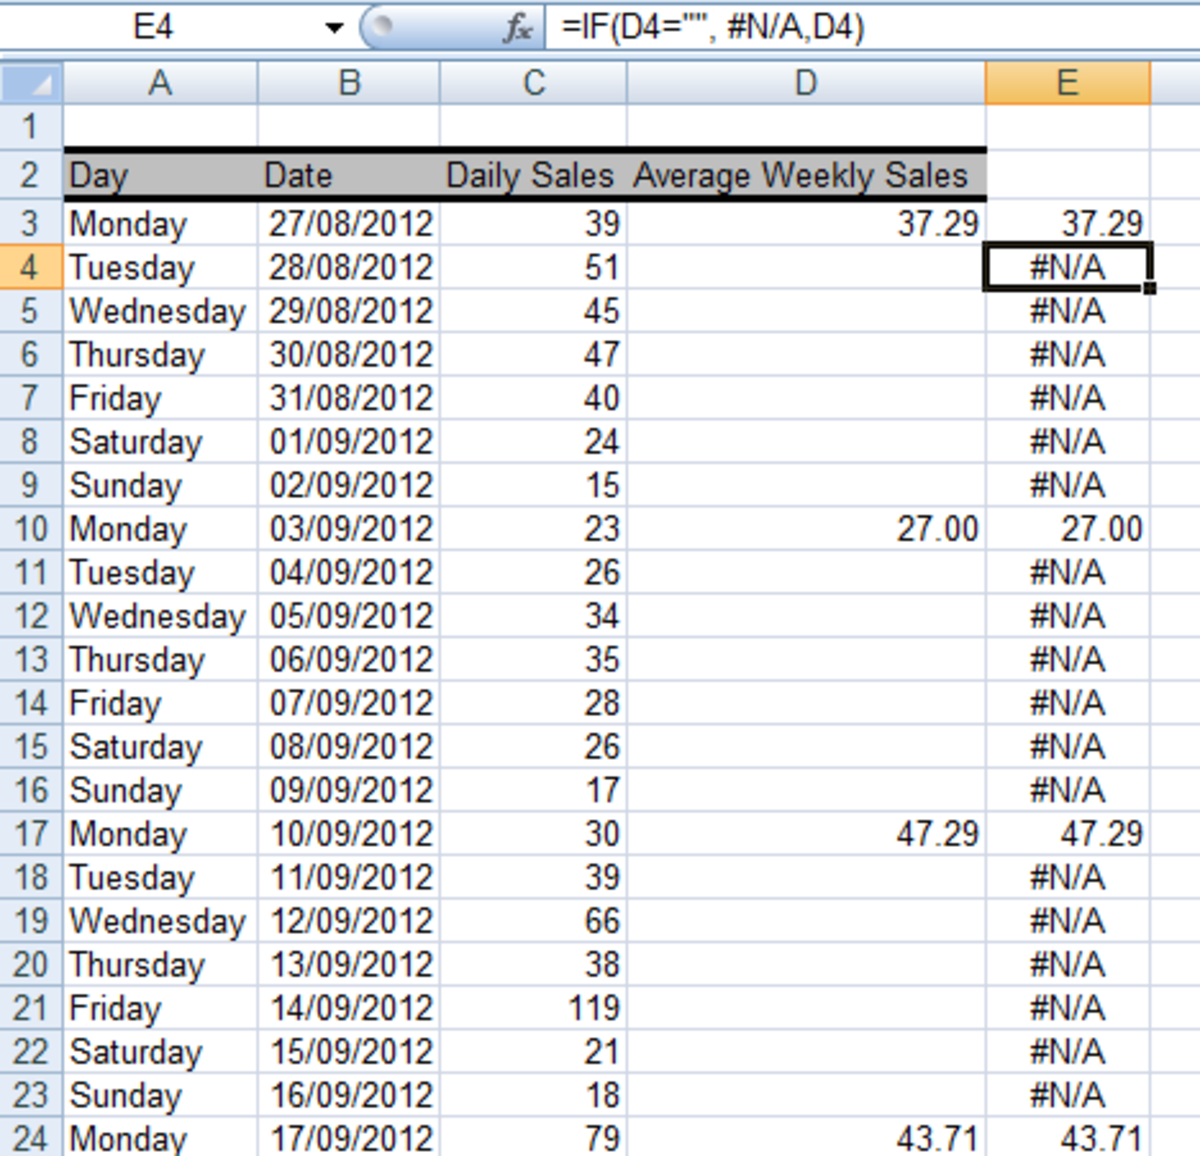 Ediblewildsus  Prepossessing How To Get Excel  And  To Ignore Empty Cells In A Chart Or  With Exquisite Using The If Function In A Formula To Convert Empty Cells To Na With Lovely Percent Change Formula In Excel Also Mixed Reference Excel In Addition What Is A Fill Handle In Excel And How To Delete Every Other Row In Excel As Well As Convert From Pdf To Excel Additionally Excel Cells From Turbofuturecom With Ediblewildsus  Exquisite How To Get Excel  And  To Ignore Empty Cells In A Chart Or  With Lovely Using The If Function In A Formula To Convert Empty Cells To Na And Prepossessing Percent Change Formula In Excel Also Mixed Reference Excel In Addition What Is A Fill Handle In Excel From Turbofuturecom